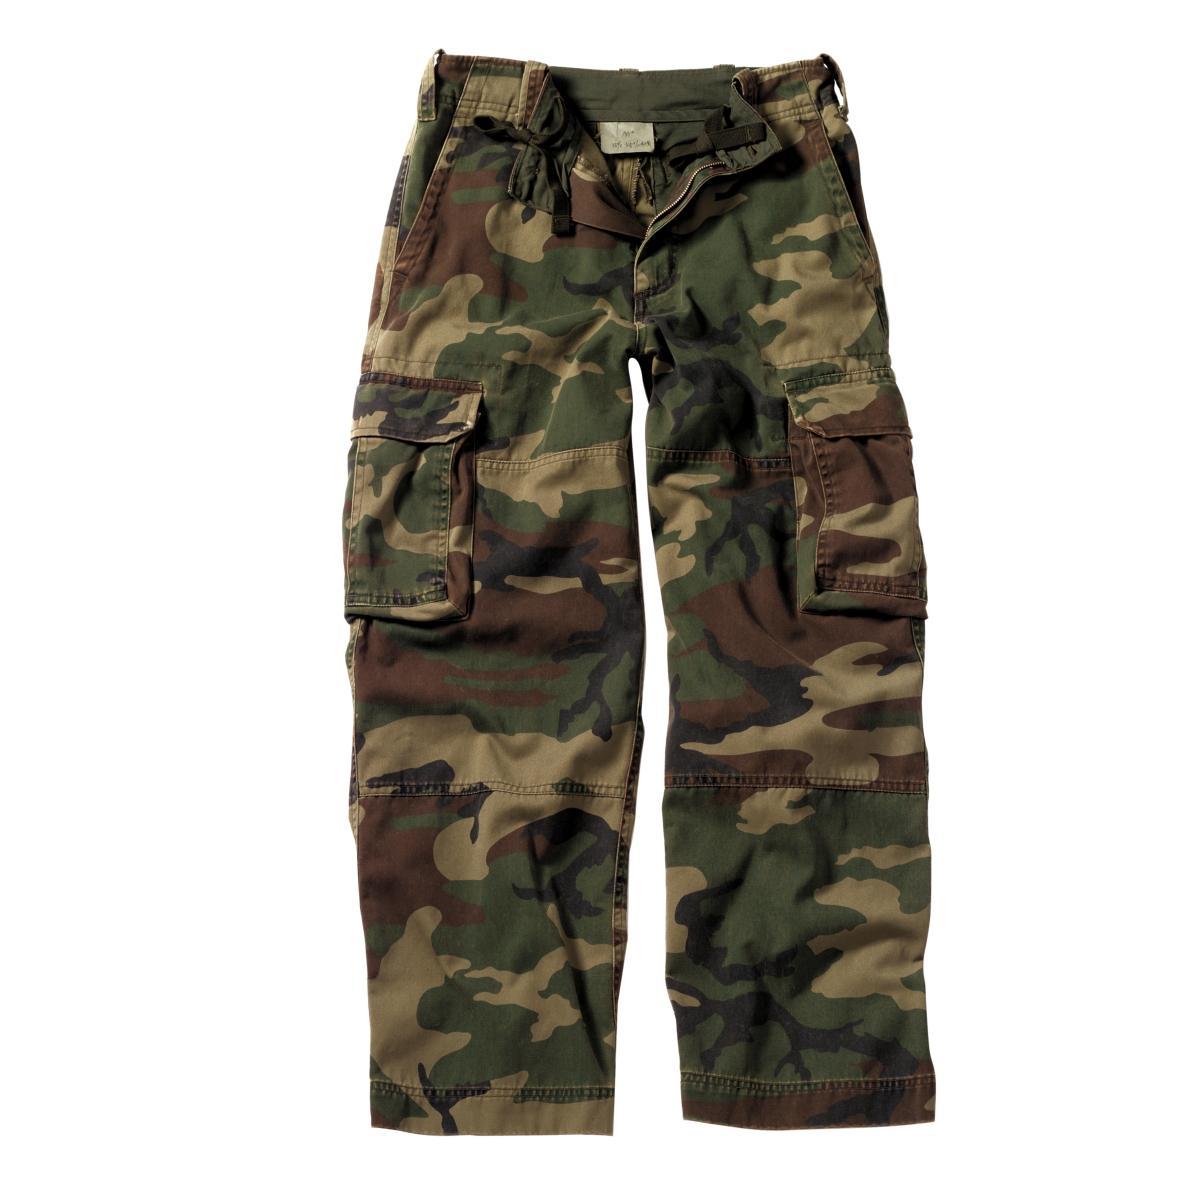 Camouflage pants come in a variety of camo prints, colors and styles to minimize your odds of visual detection. You can match your terrain with realistic prints and hues and no-shine fabrics. Go completely unnoticed with the help of innovative scent-blocking technologies.